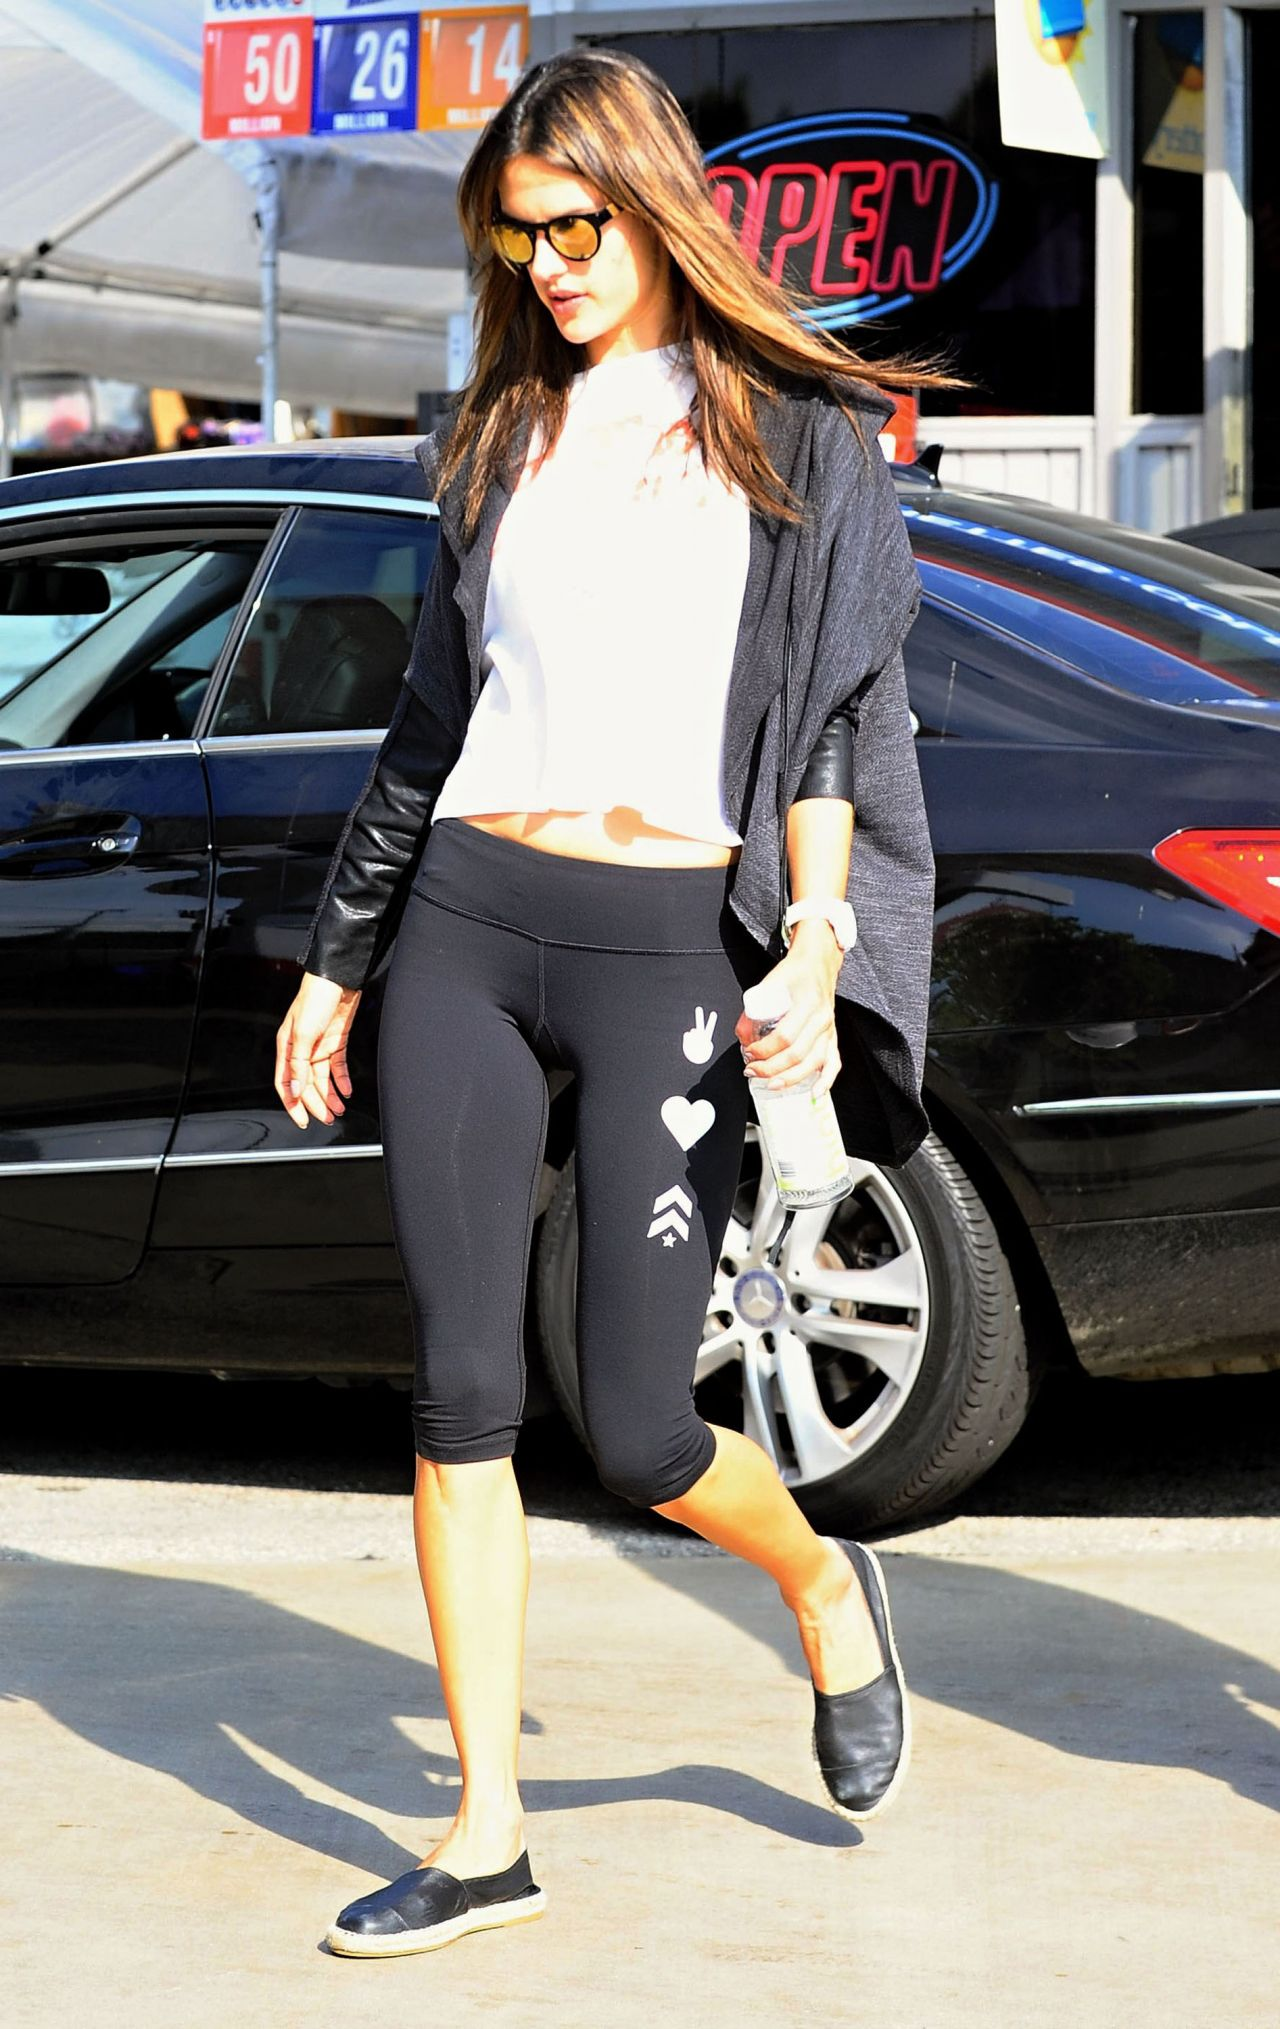 Alessandra Ambrosio In Tight Spandex Out In Los Angeles